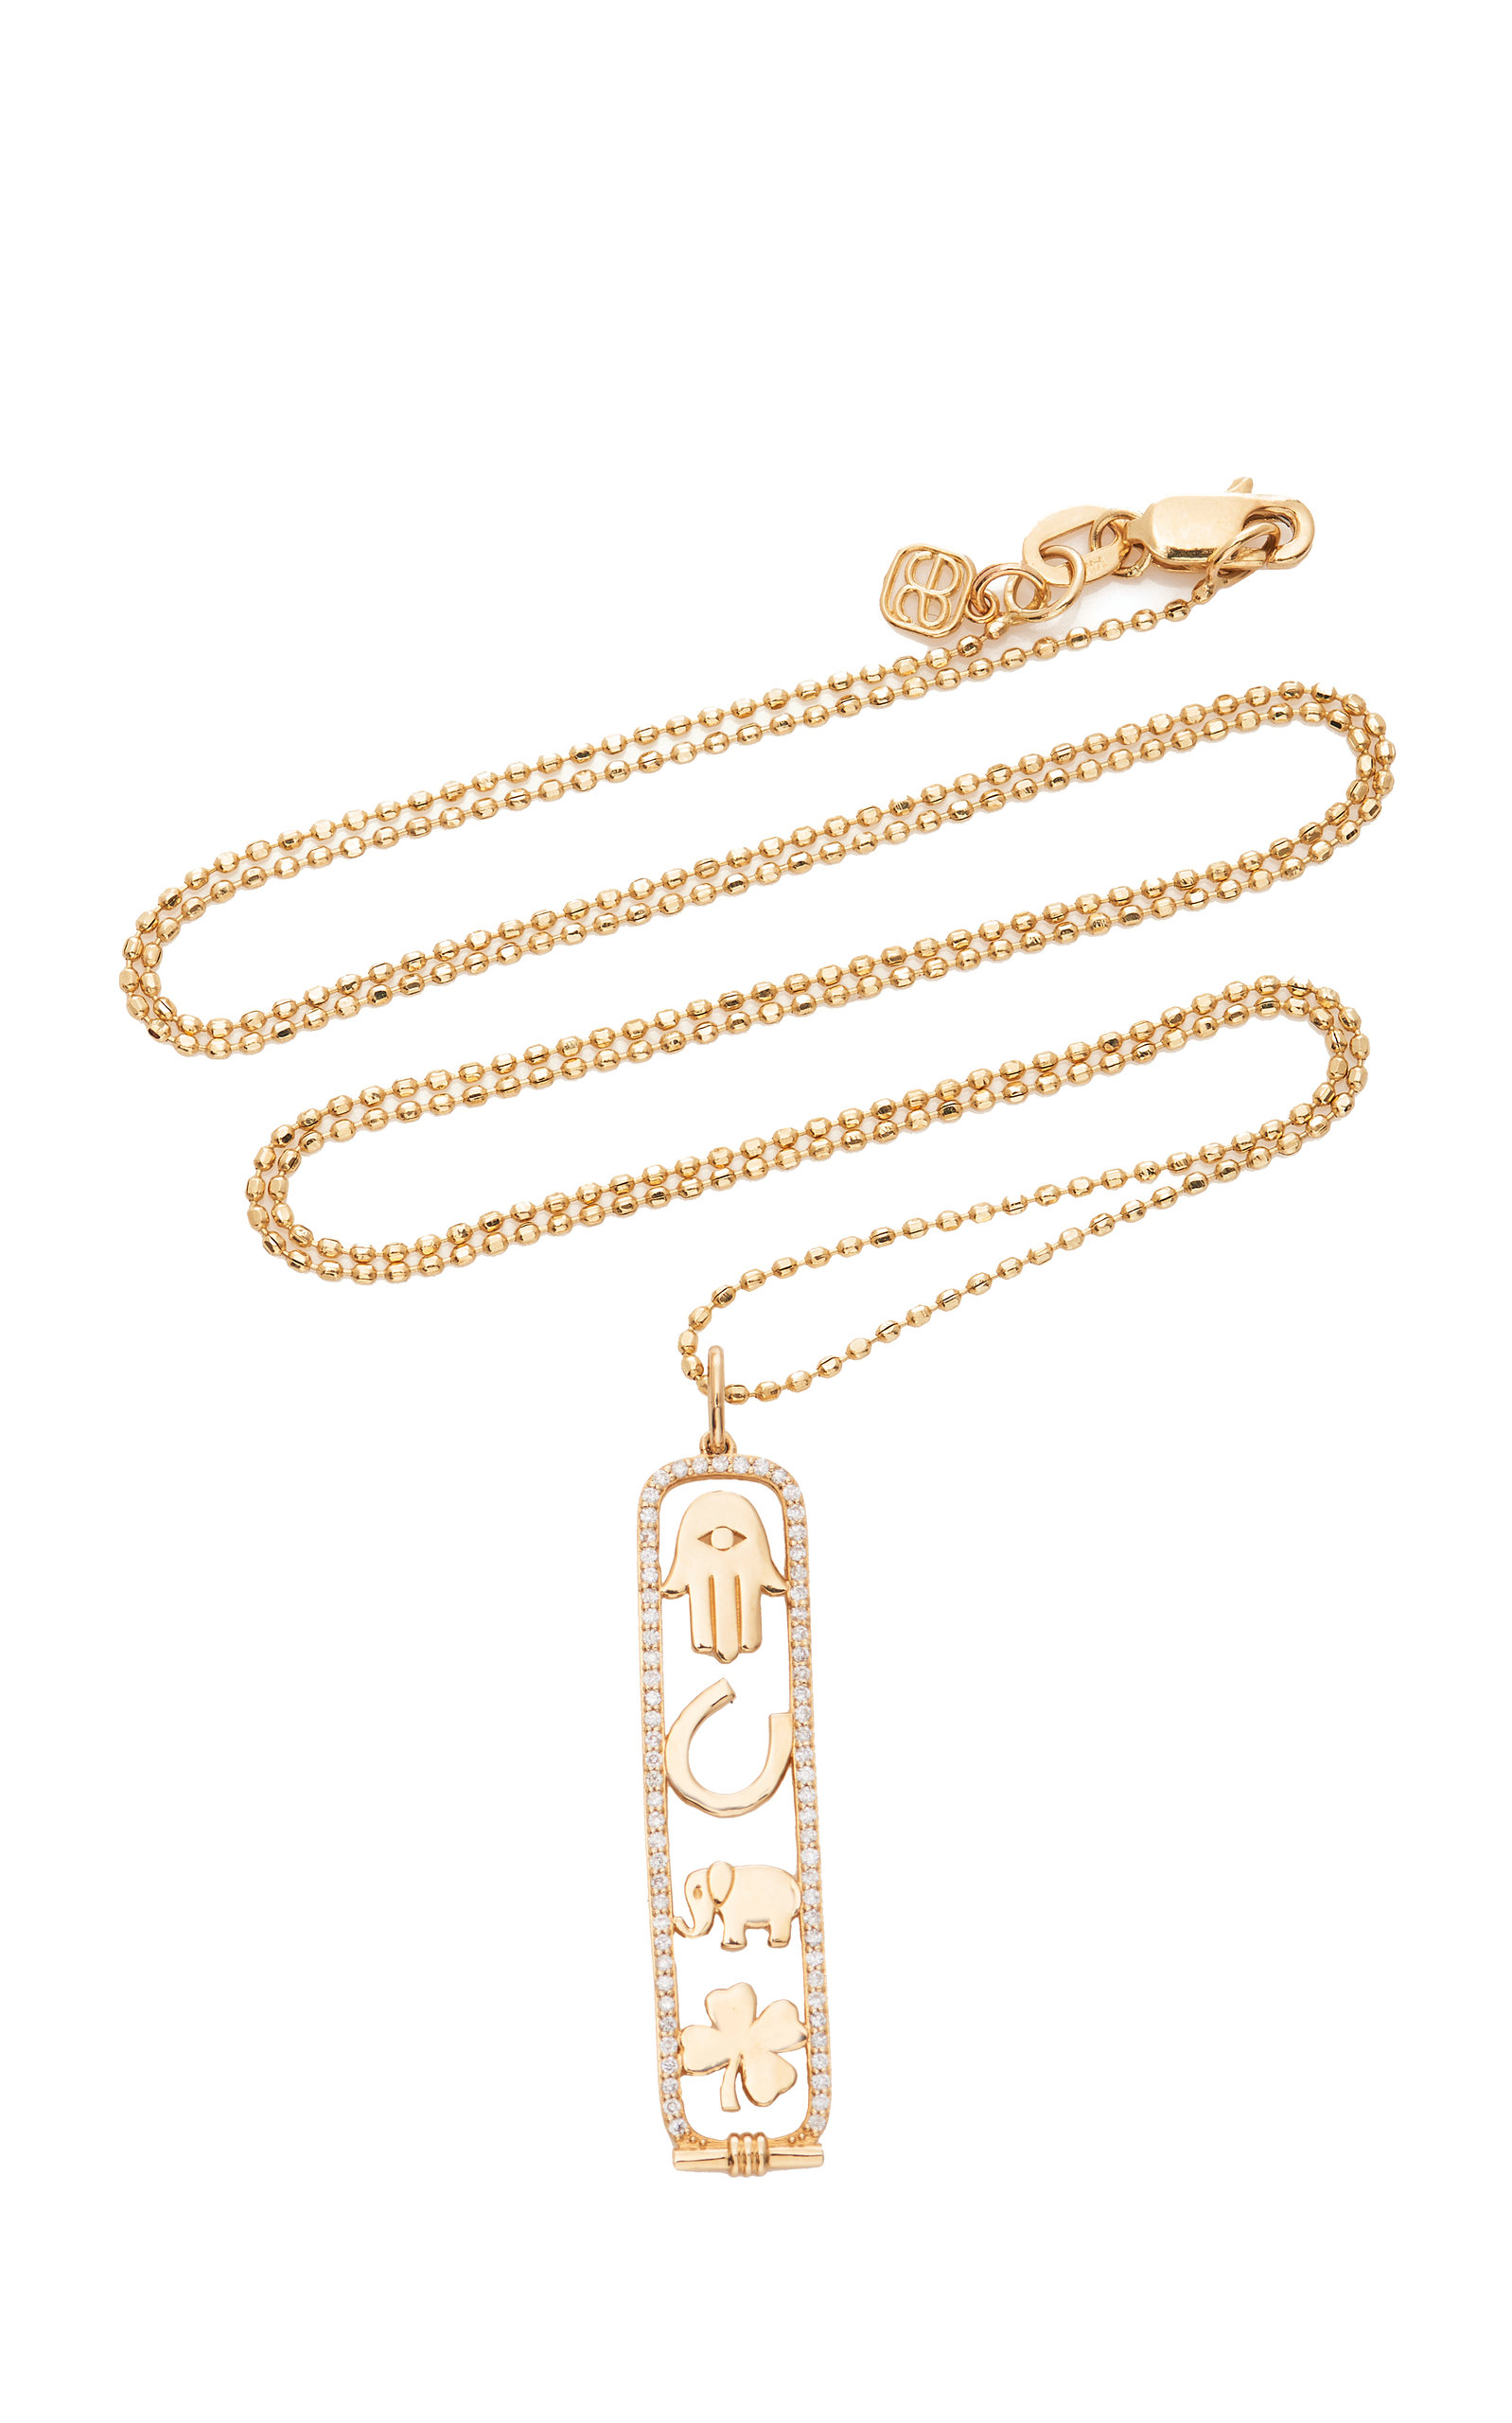 14 K Yellow Gold Luck And Protection Long Cartouche Necklace by Sydney Evan